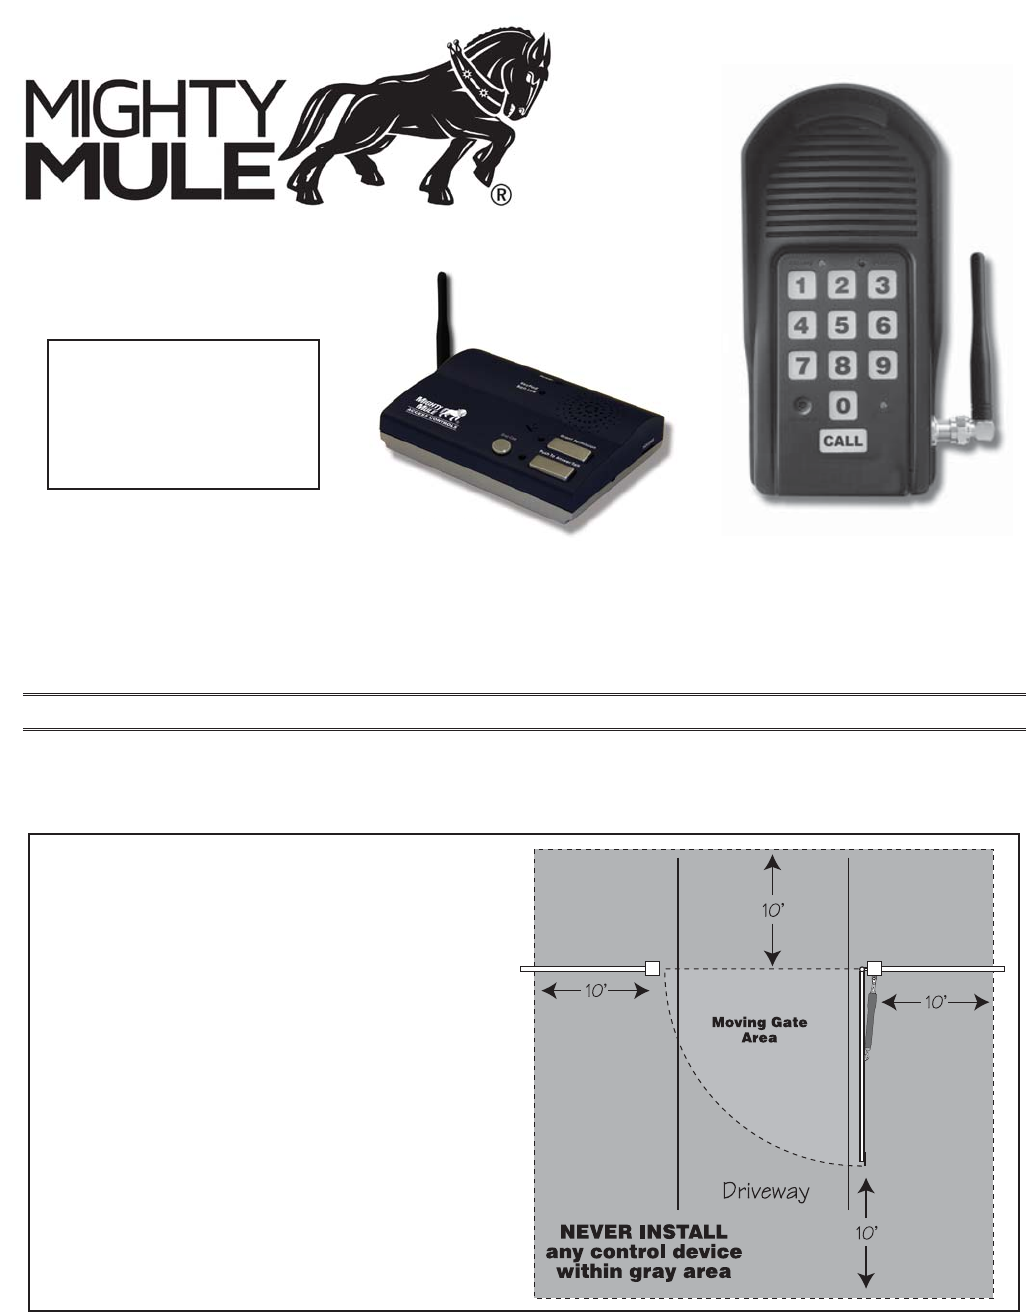 Gto Access Systems Mm136kp Mighty Mule Retail Keypad User Manual Mm136 500 Wiring Diagram